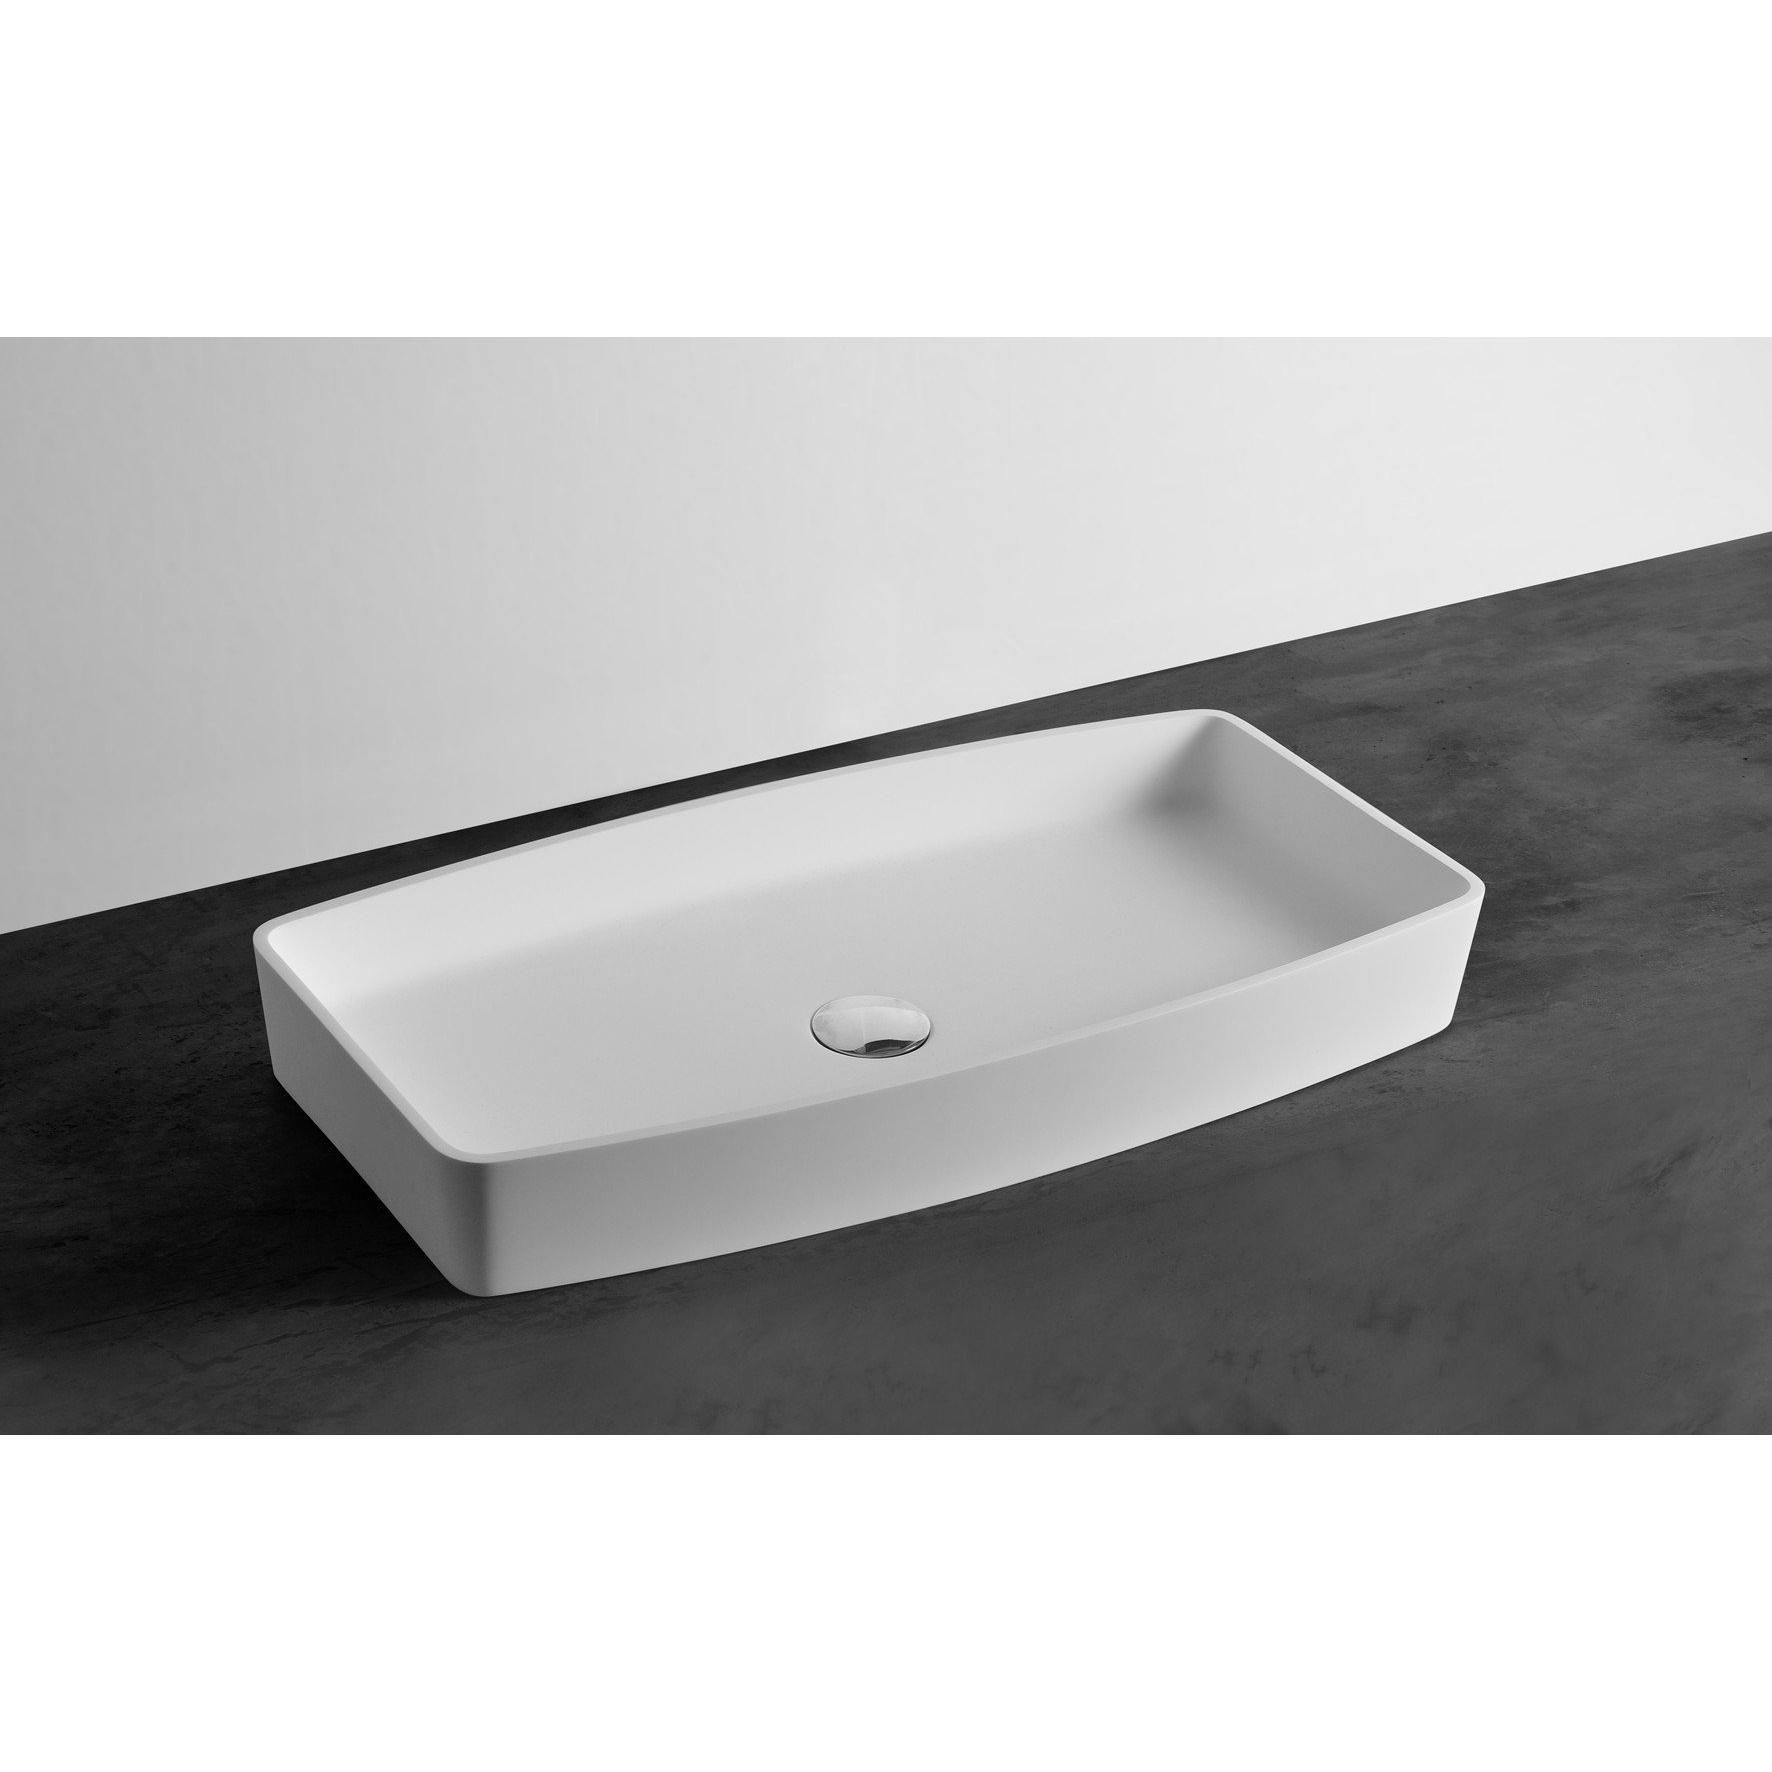 Ideavit Form Rectangular Solid Surface Vessel Sink Bowl Above Counter Sink  Lavatory For Vanity Cabinet